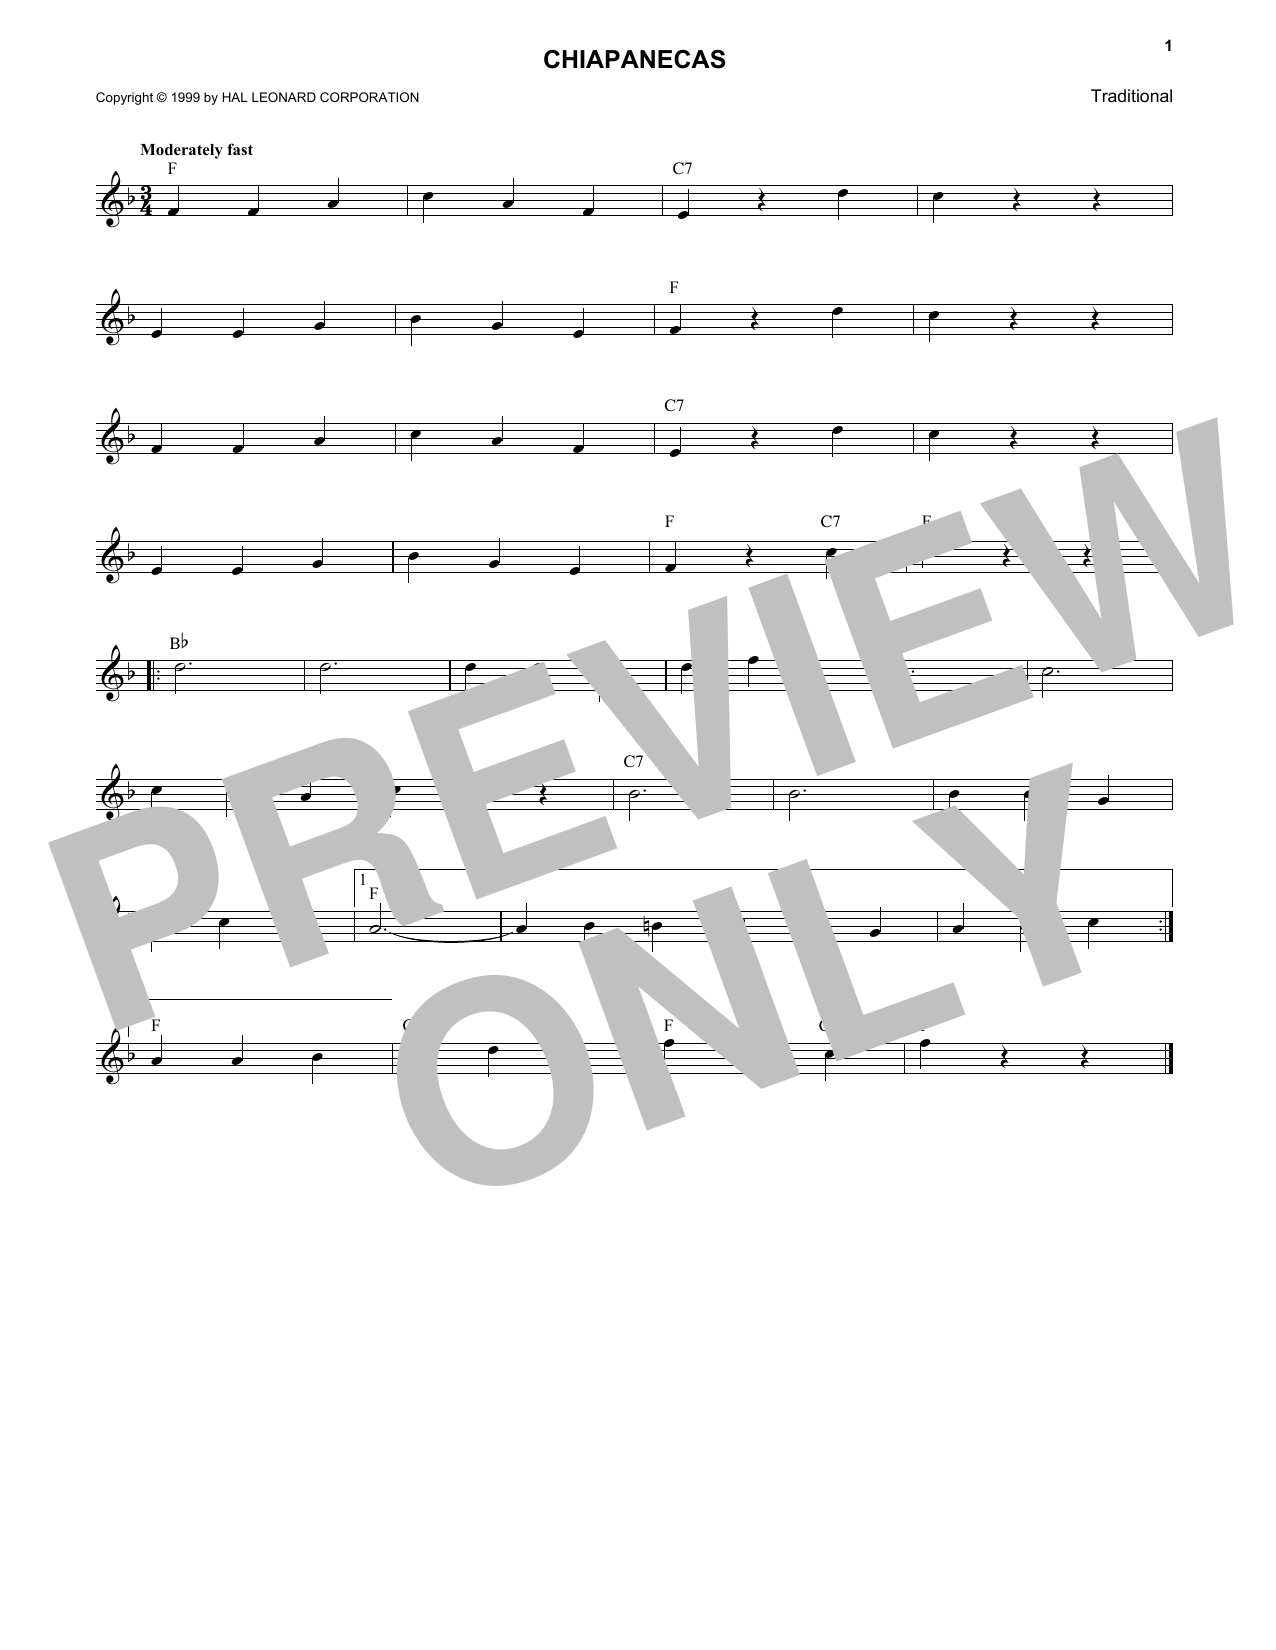 Mexican Folk Song Chiapanecas sheet music notes and chords. Download Printable PDF.